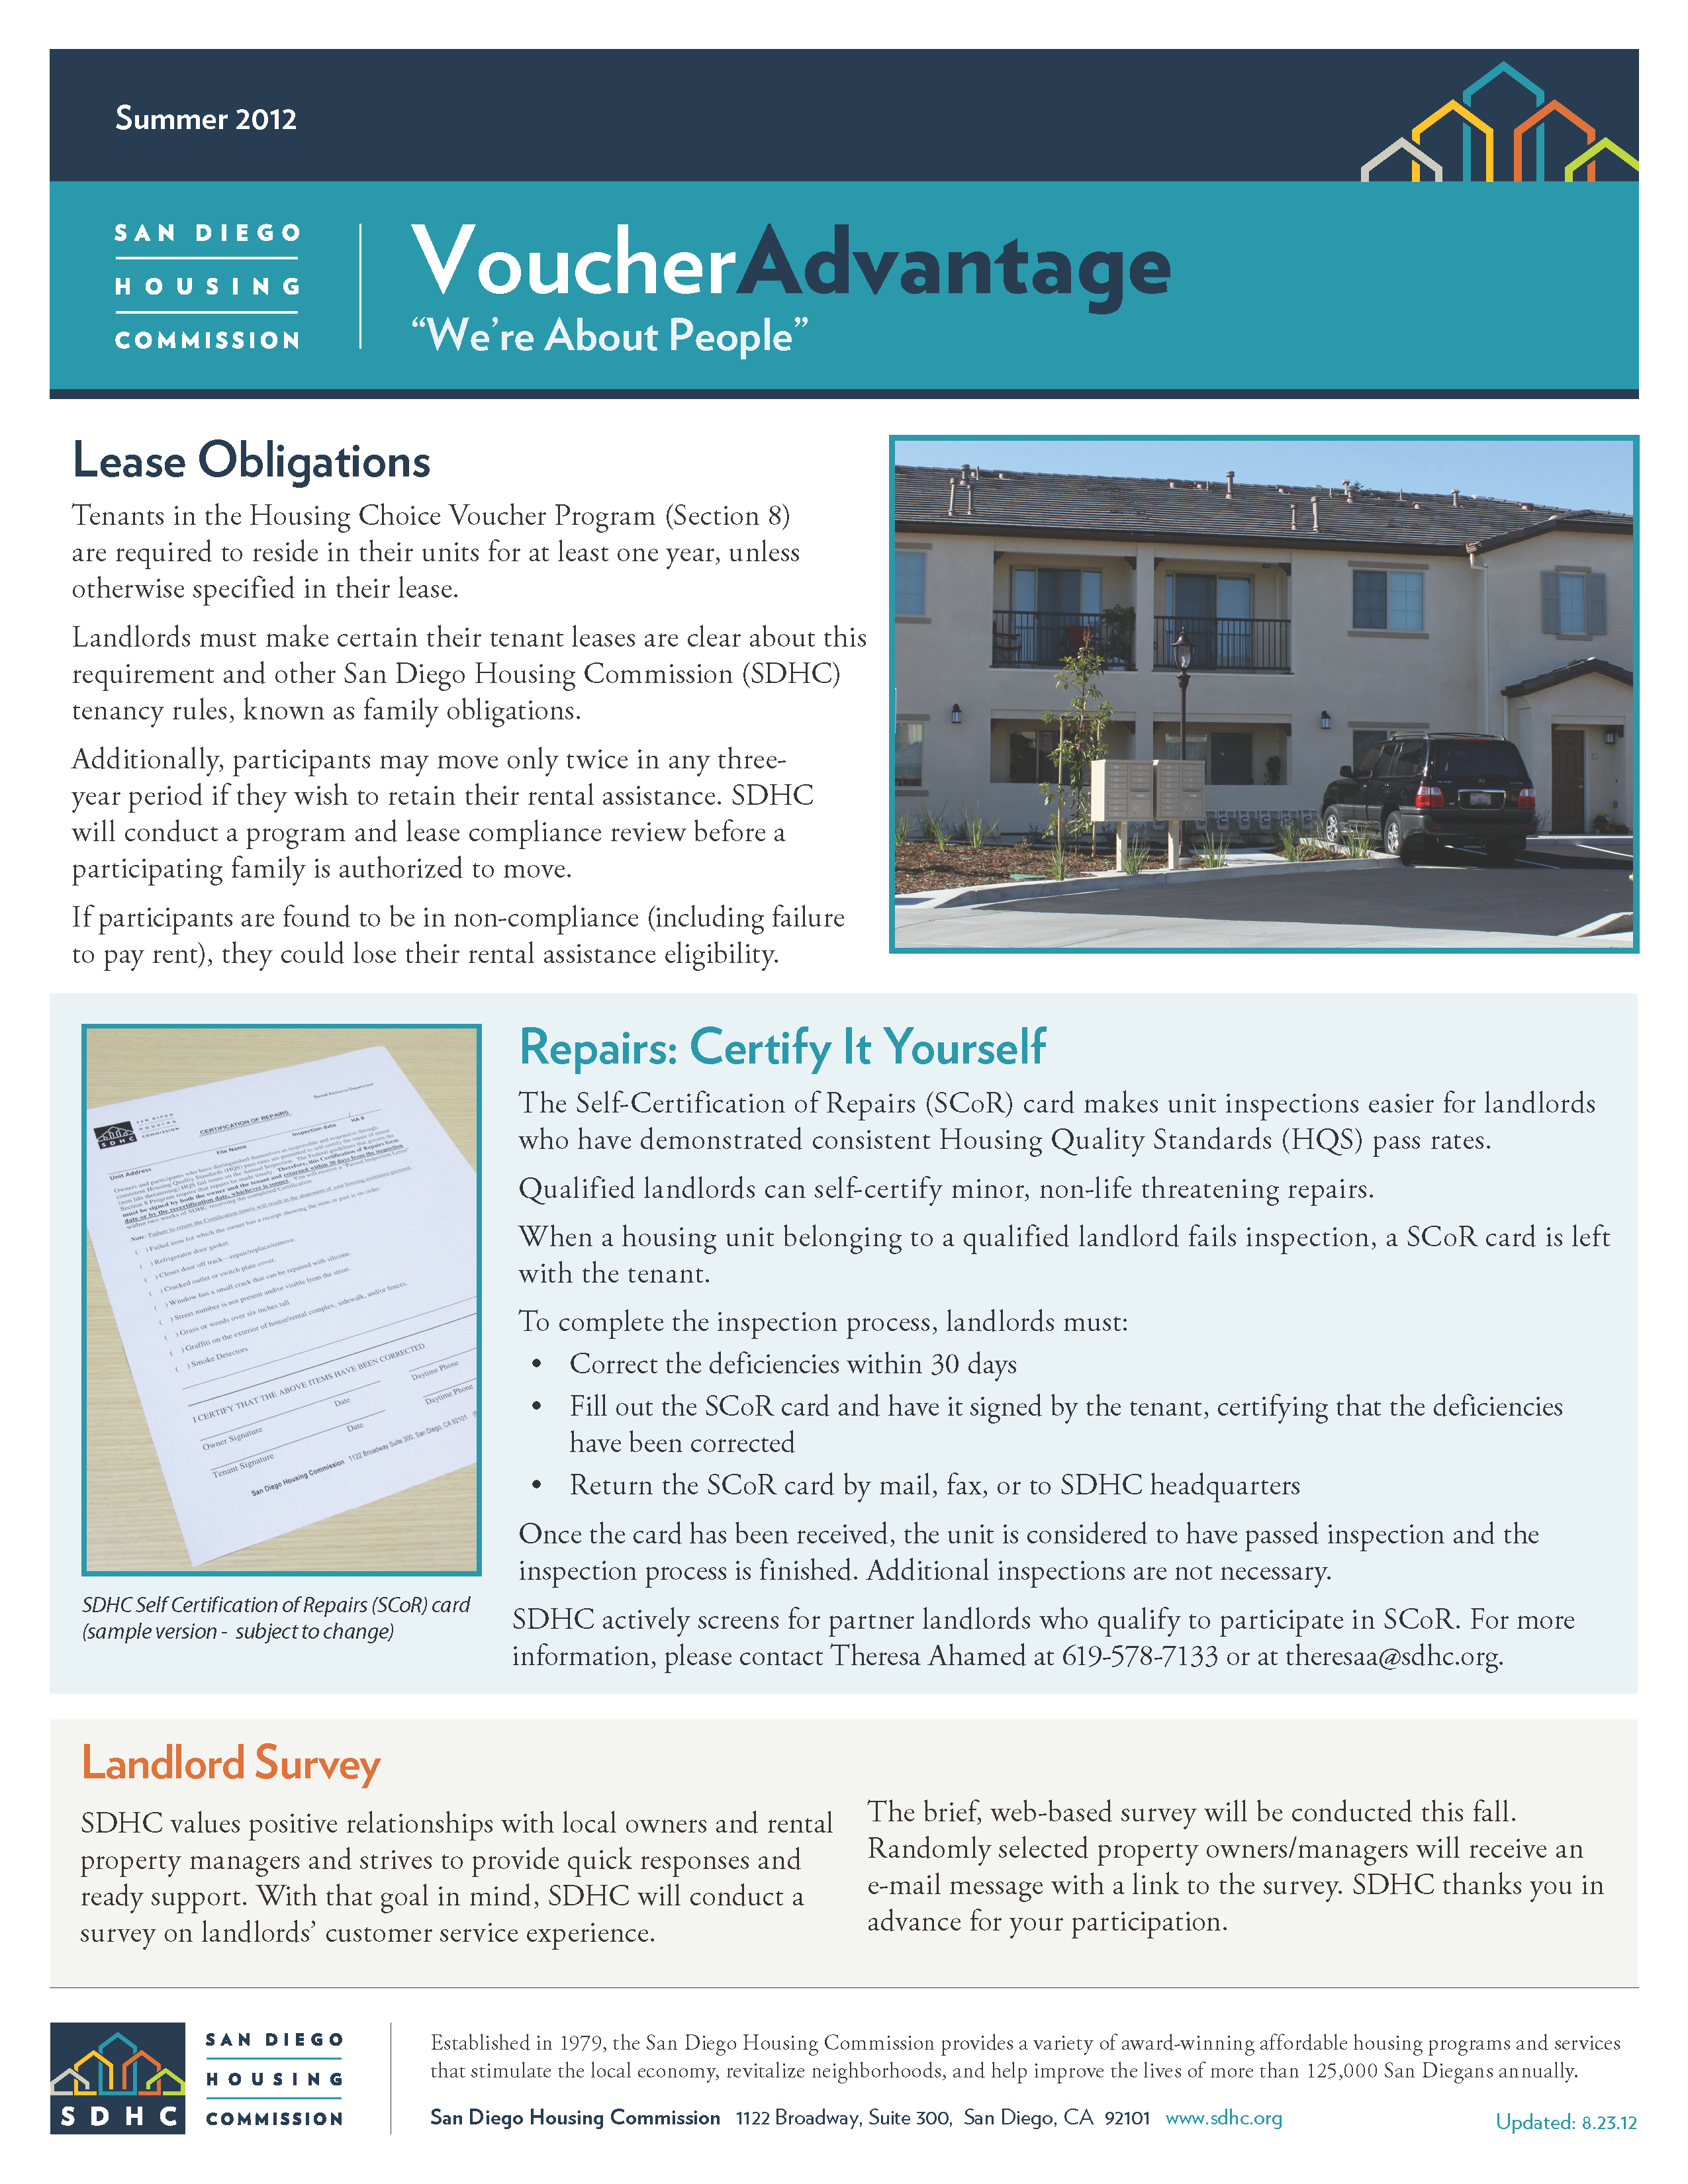 Voucher Advantage_Summer 2012